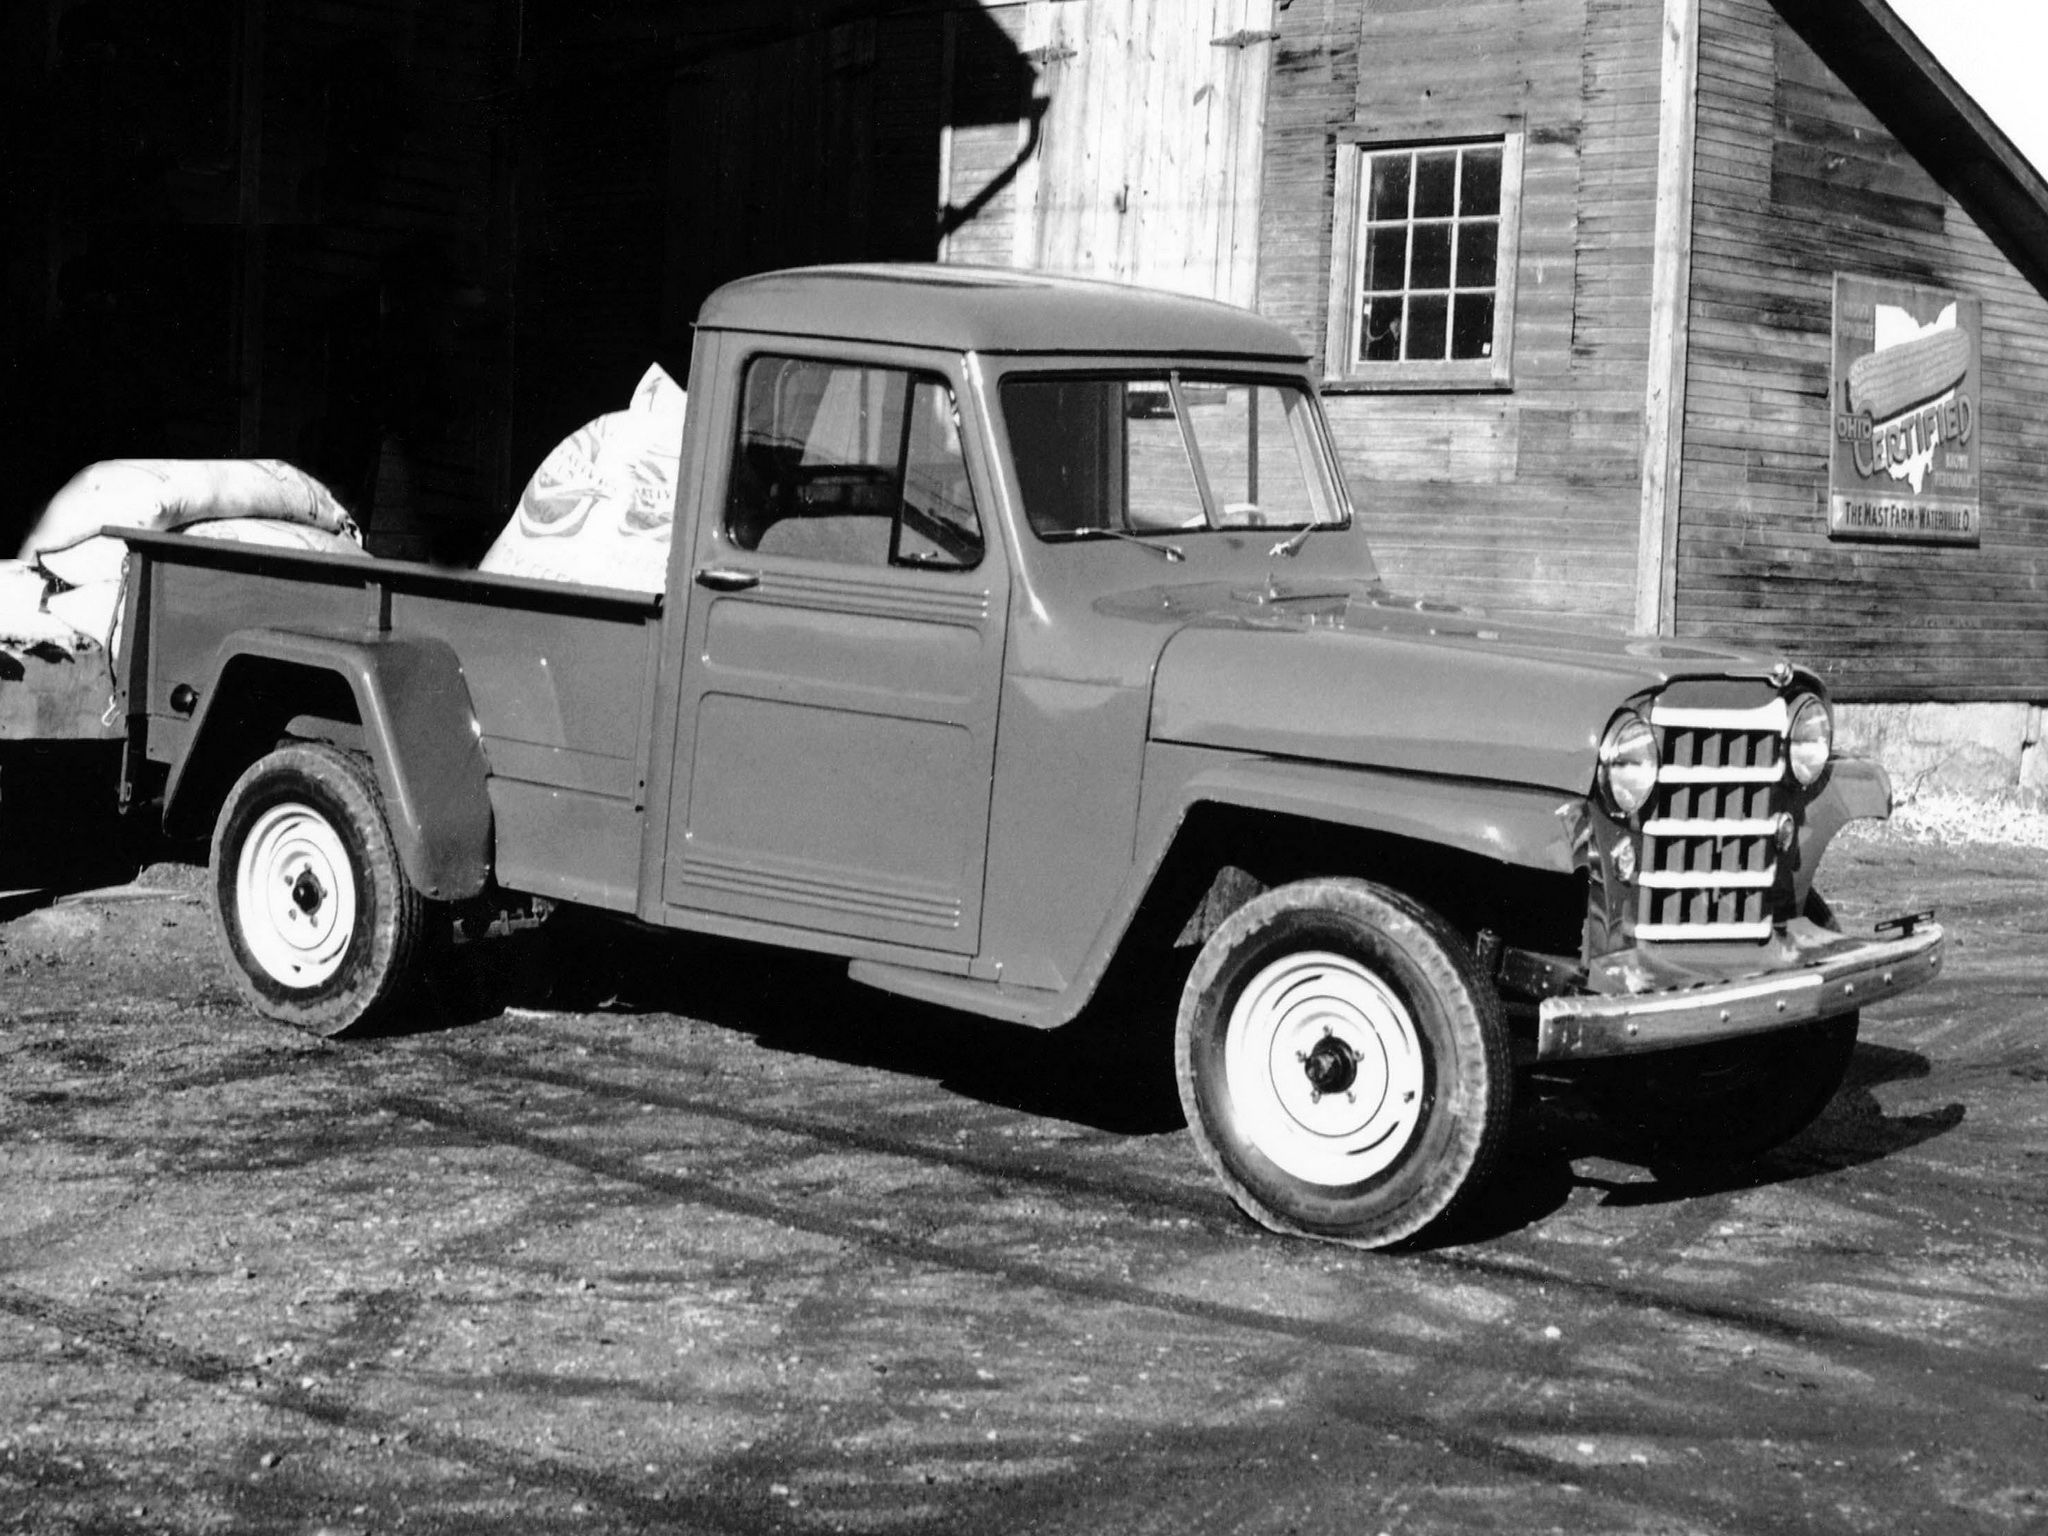 Jeep willys 1942 picture 3d automotive jeep willys car digital art pinterest jeep willys jeeps and 4x4